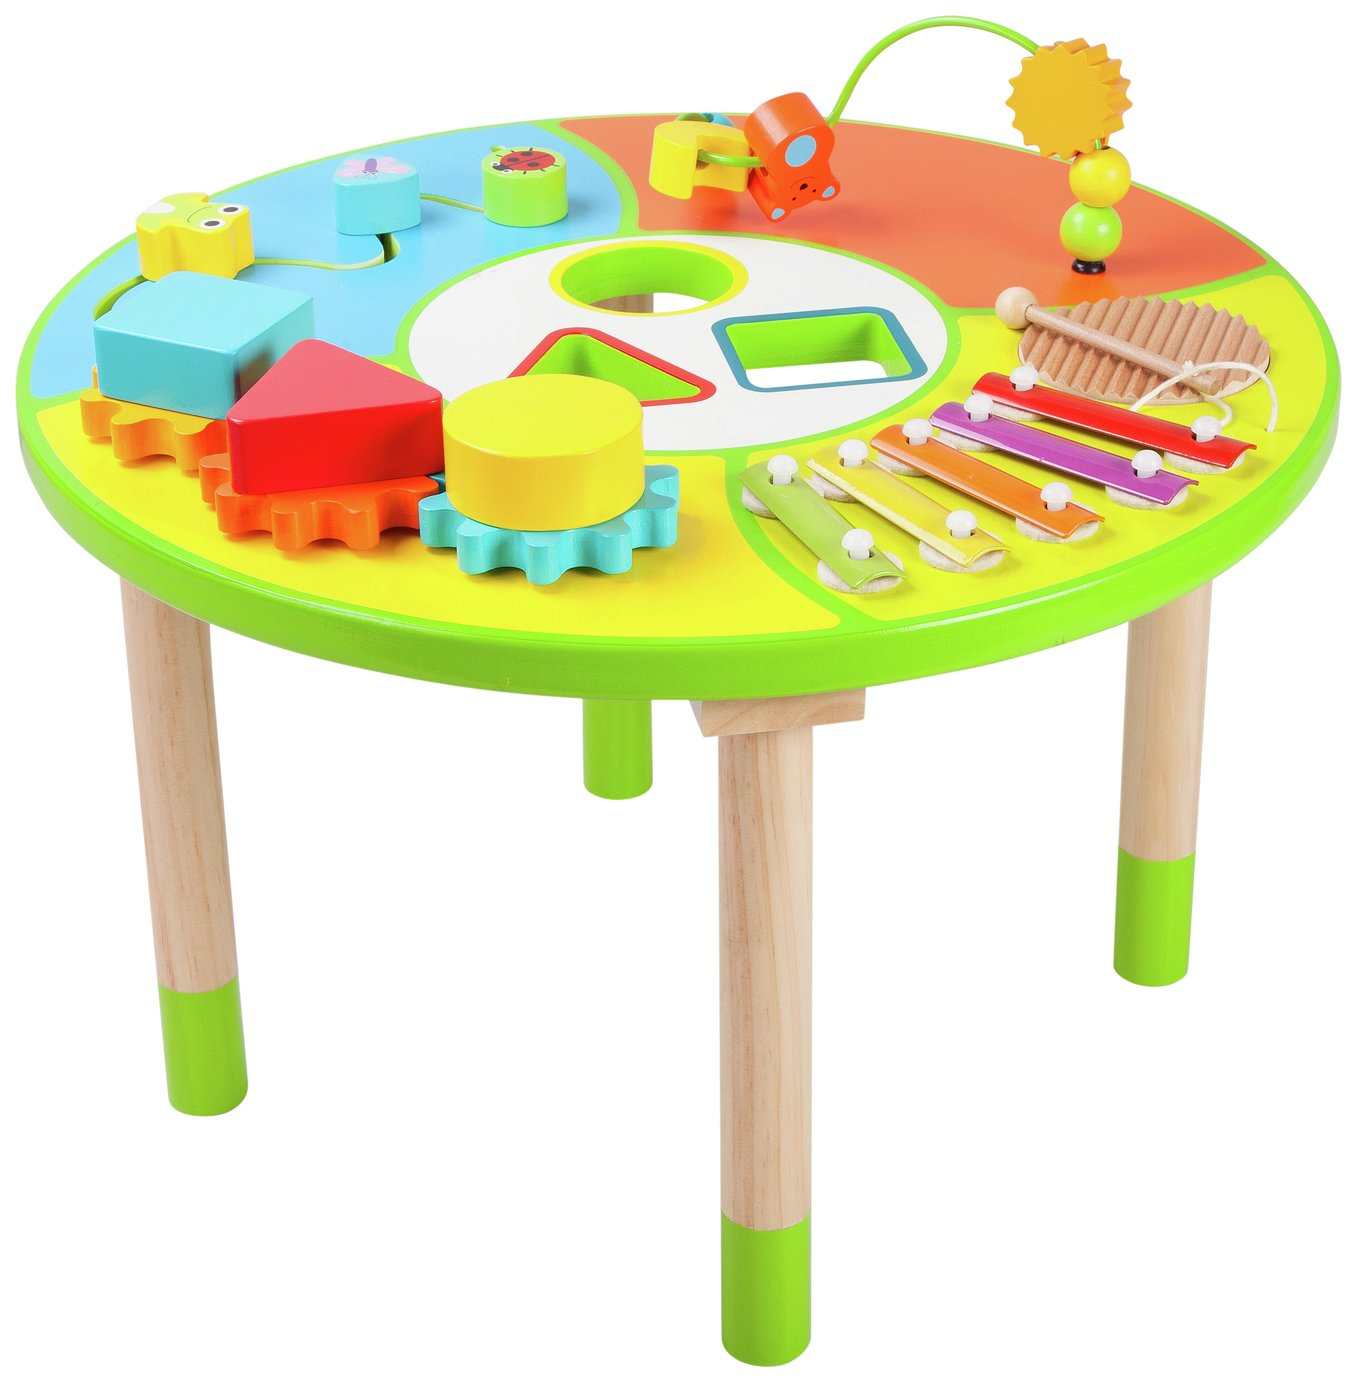 Table Top Toys For Preschoolers : Chad valley wooden activity table